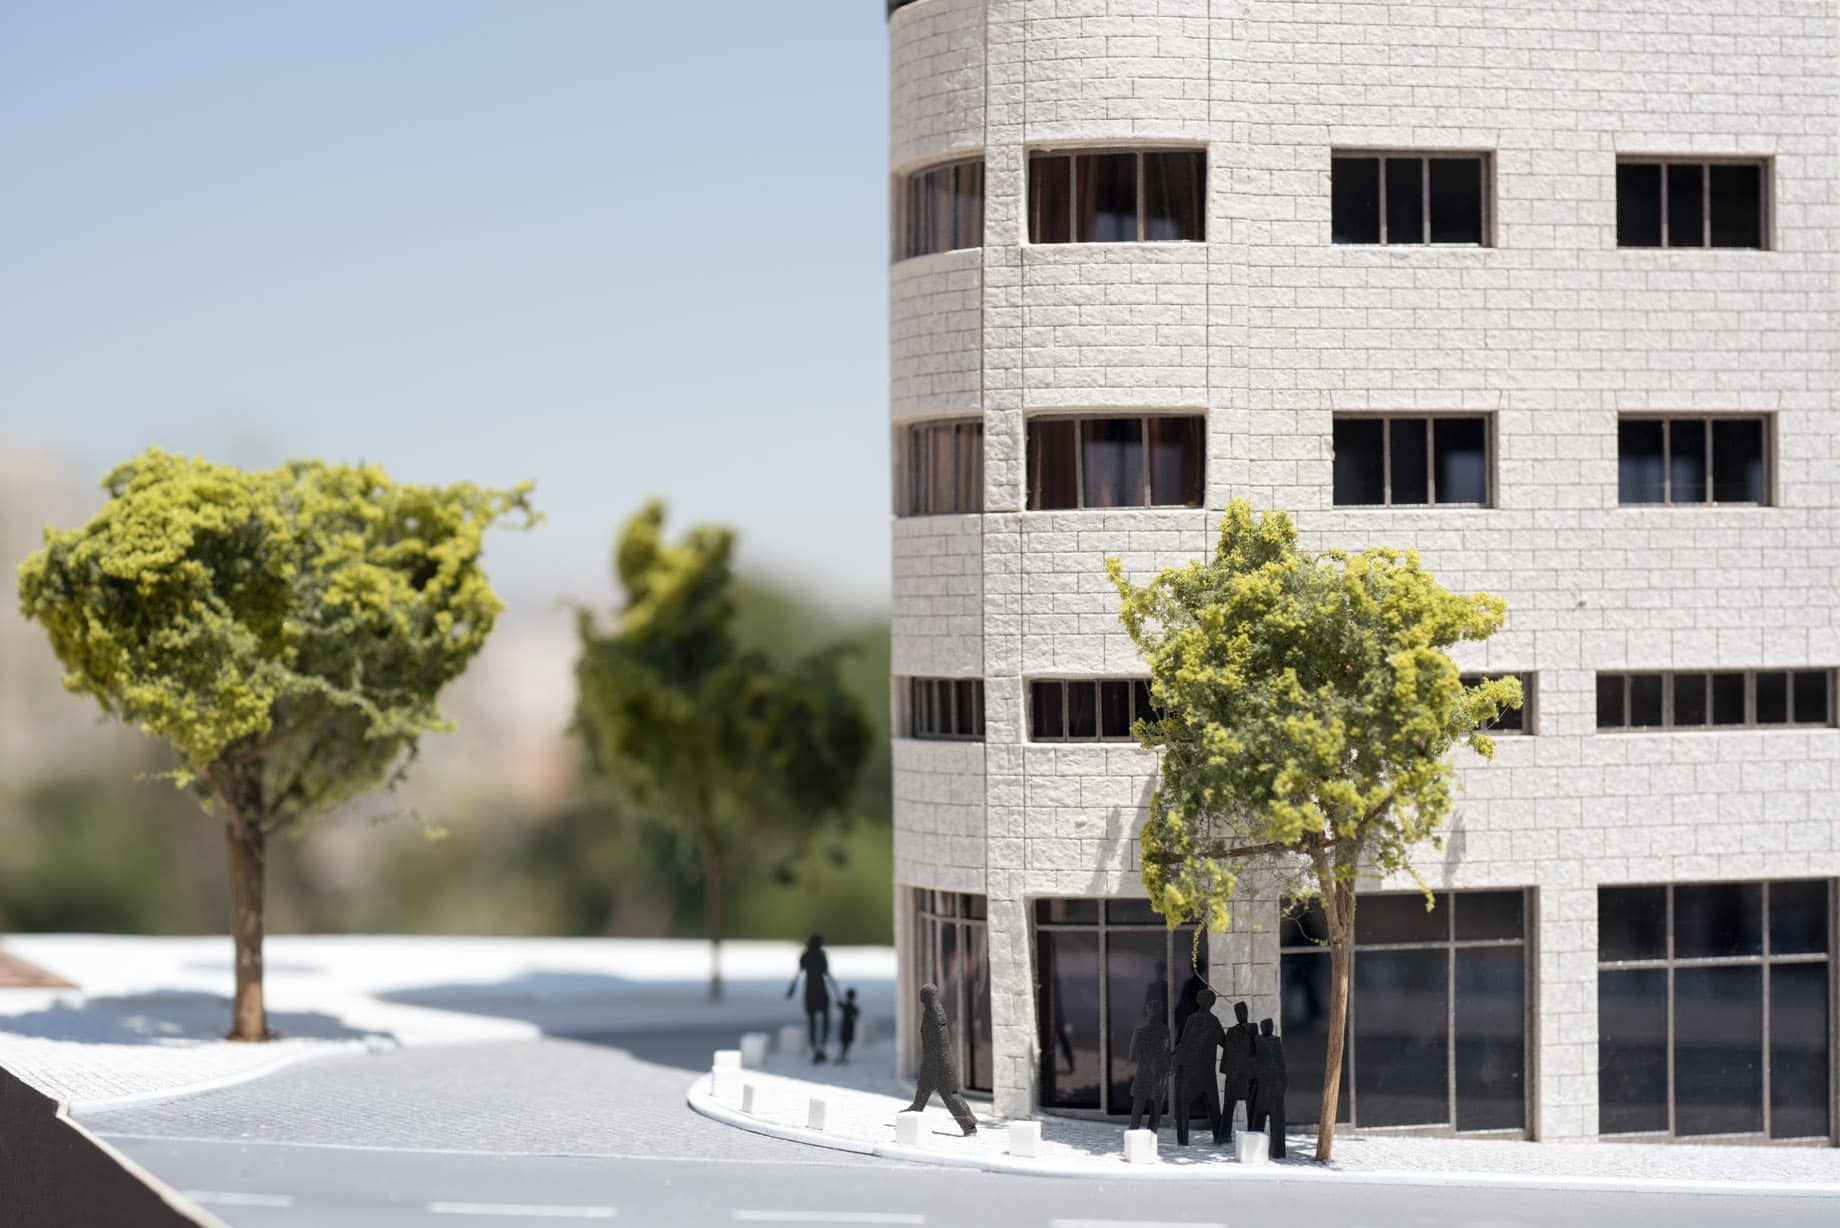 architecture model photography